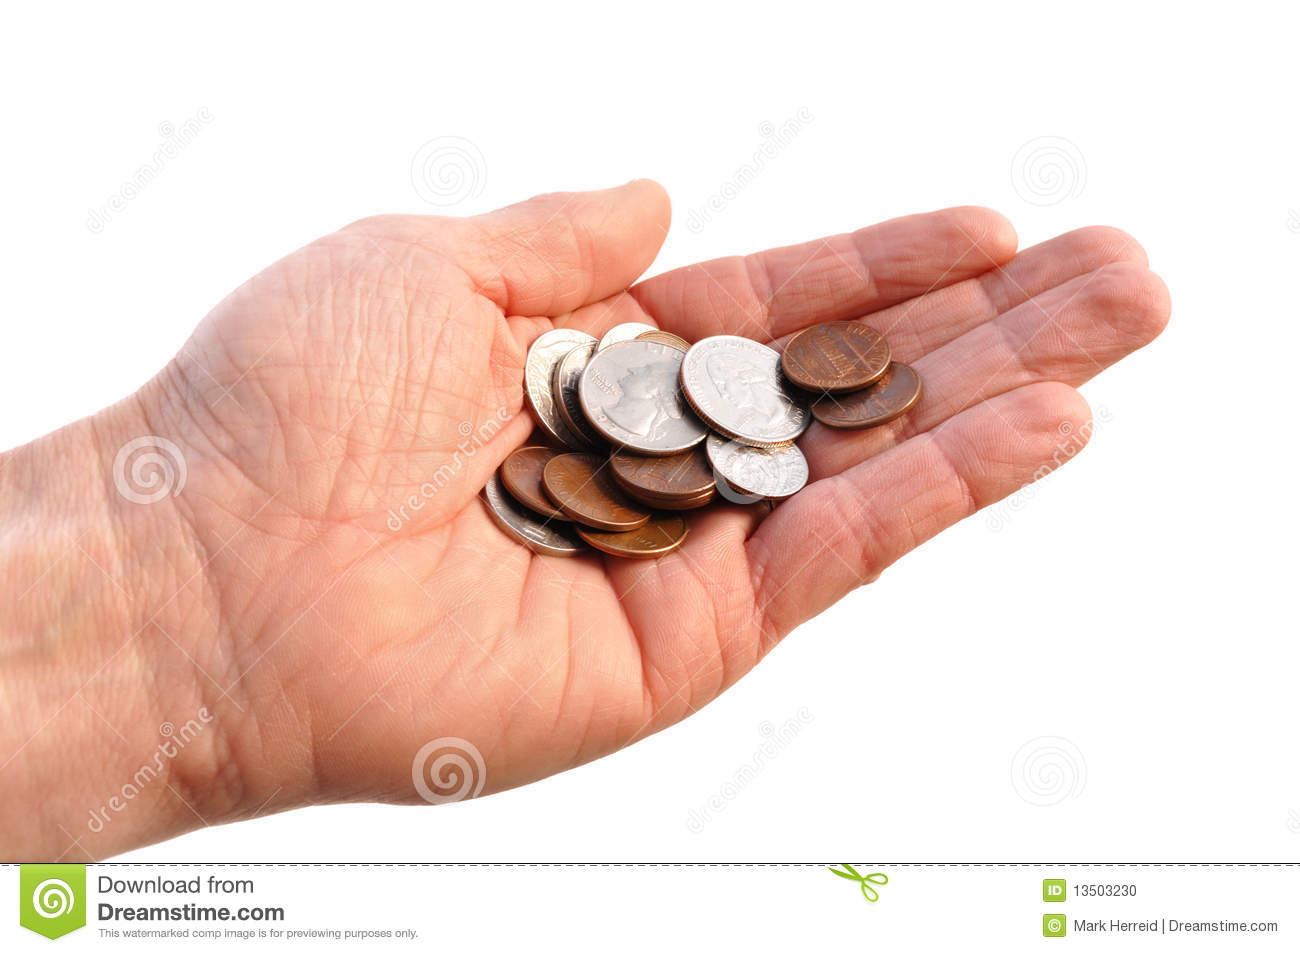 Hand Holding Change Coins Stock Photography - Image: 12708662